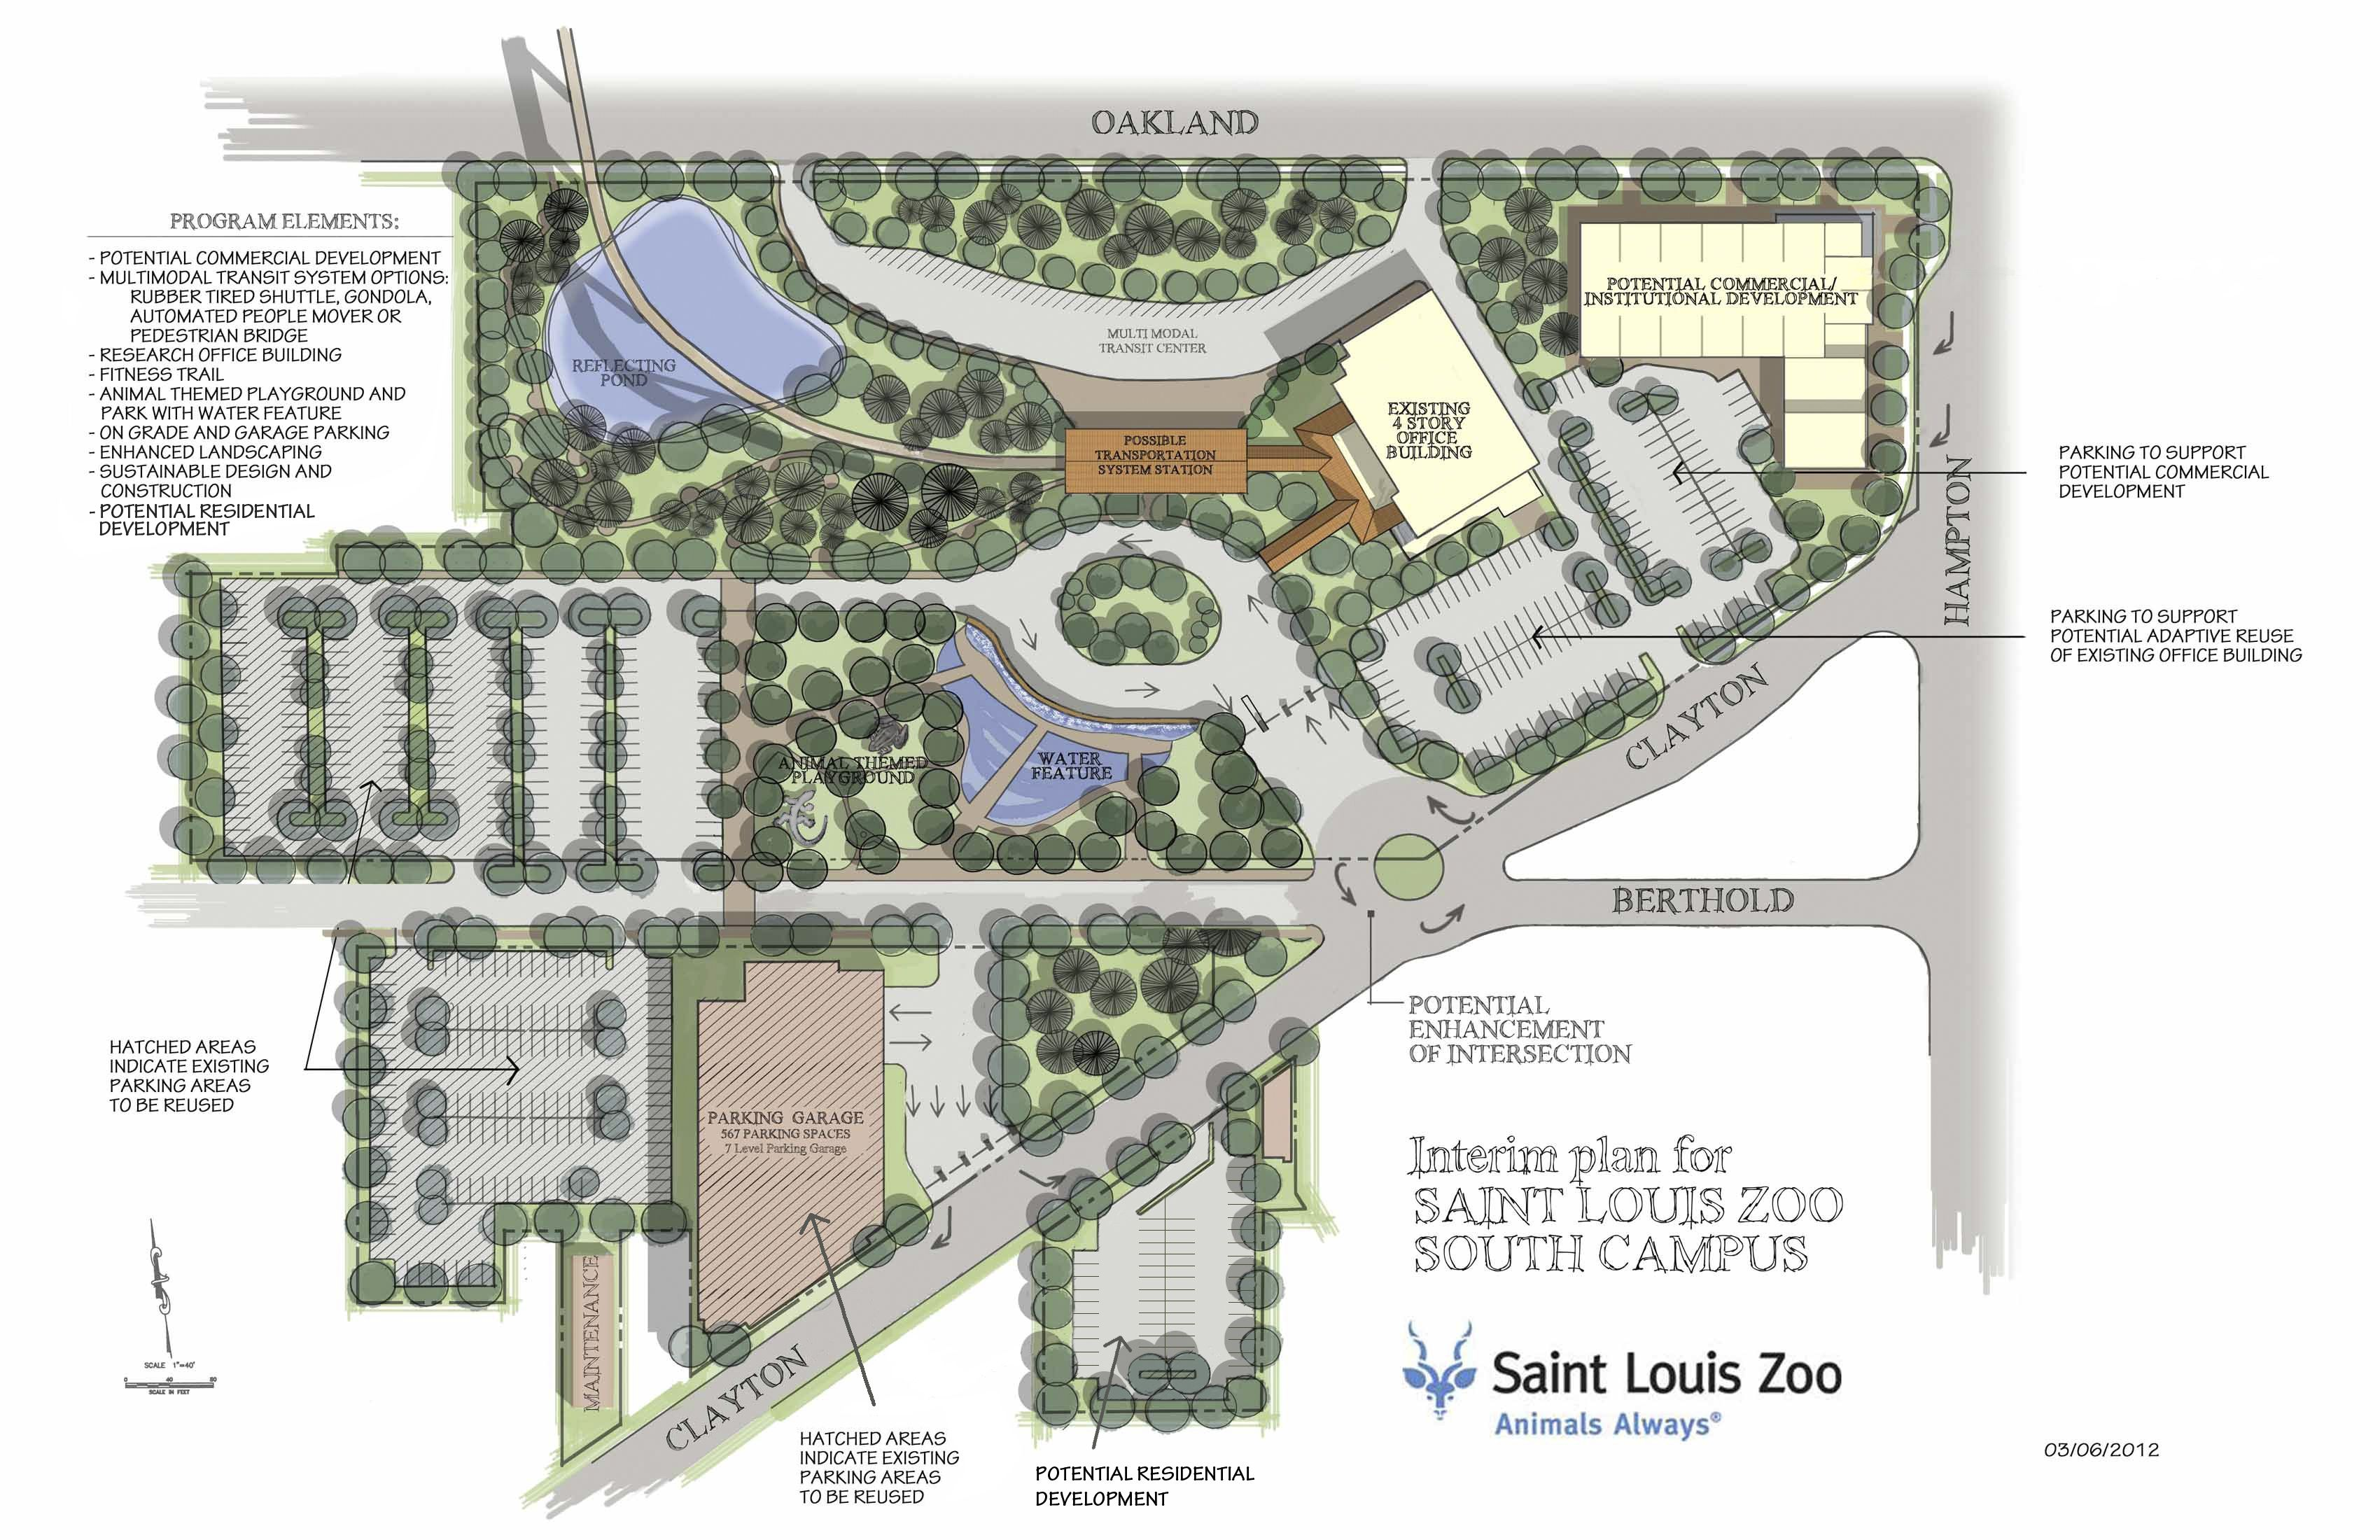 St. Louis Zoo - expansion